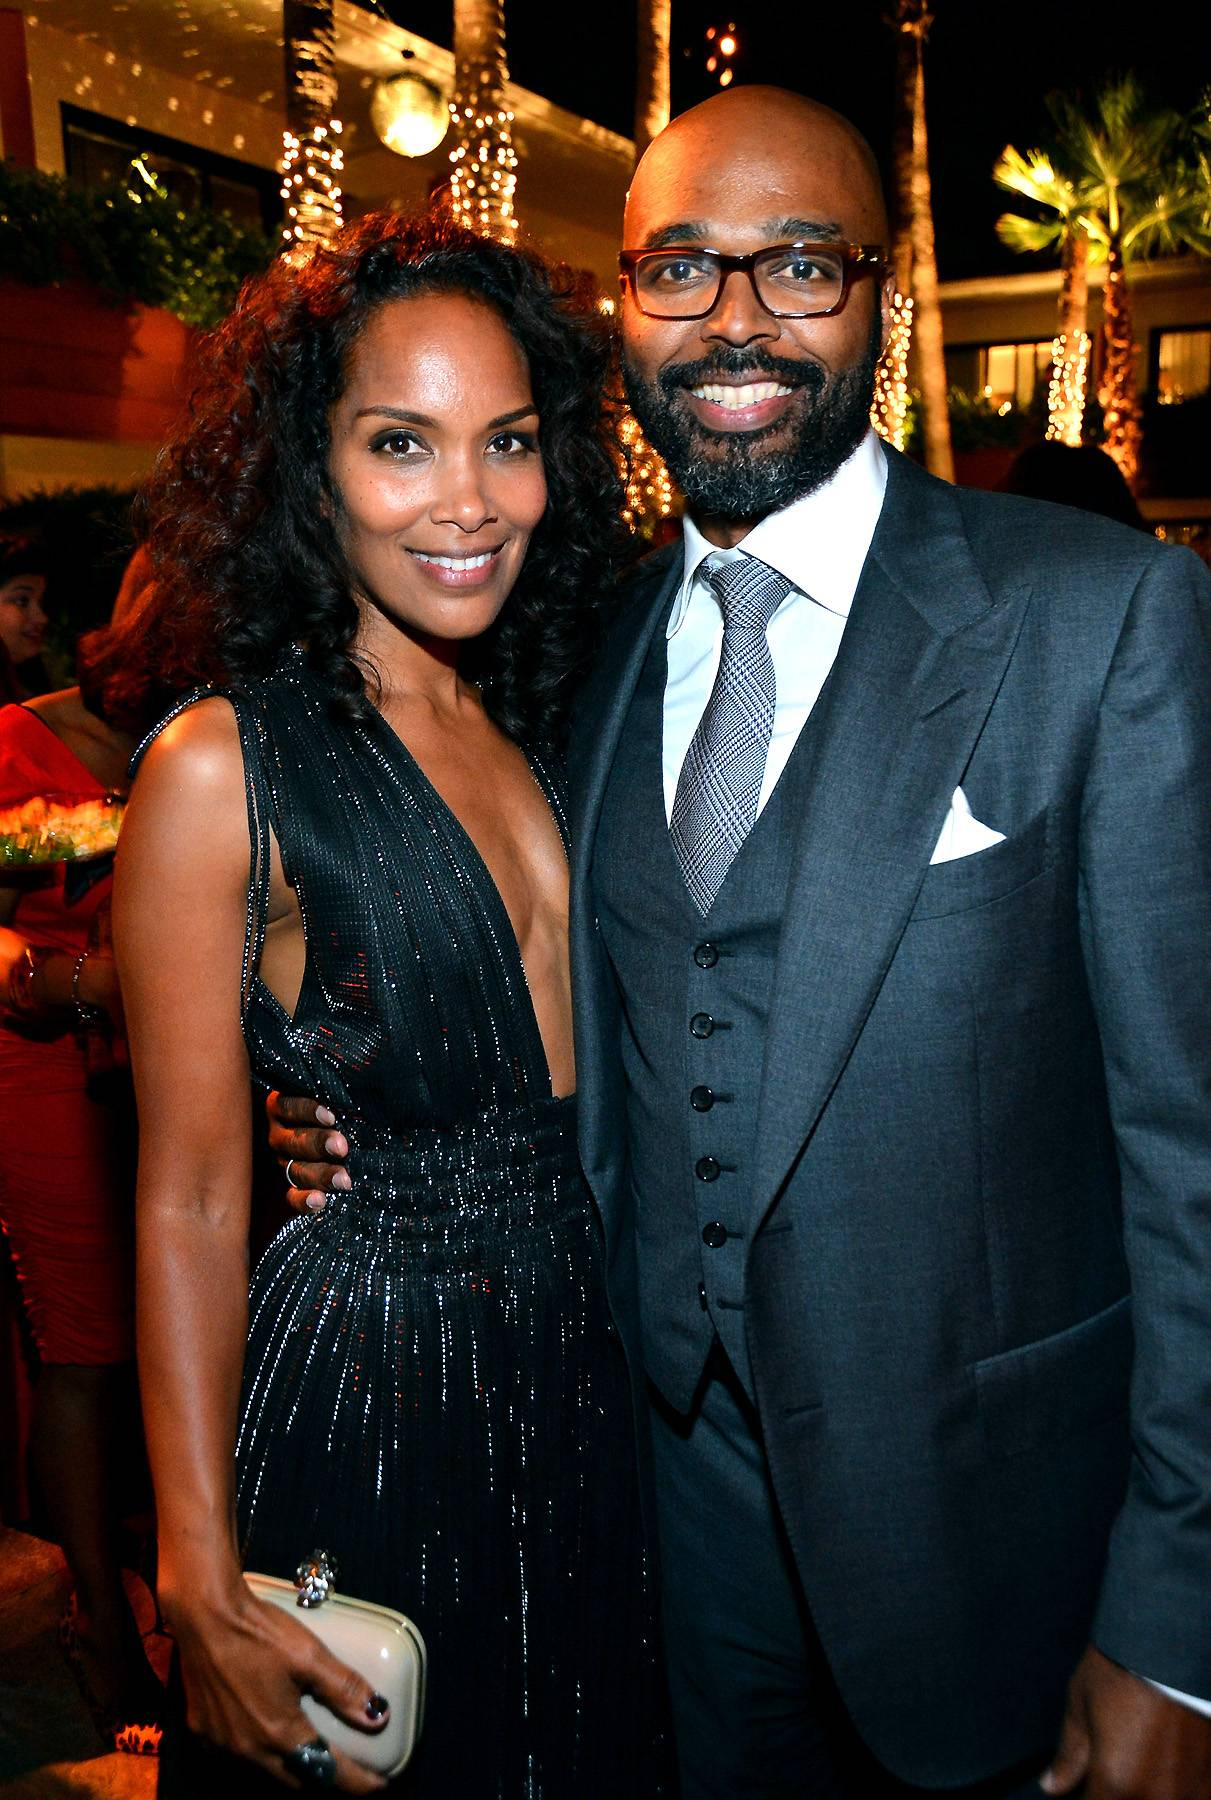 """Mara Brock Akil and Salim Akil - """"Can we cut the bullsh-- and get on about the business of living a life together?"""" This is the question Salim Akil asked Mara Brock Akil after their first dinner date. The Hollywood producing power couple met at a caf? in Los Angeles while she was a staff writer on the UPN hit show Moesha. They married in 1999 and went on to create Girlfriends, The GameandBeing Mary Jane.(Photo: Frazer Harrison/Getty Images)"""